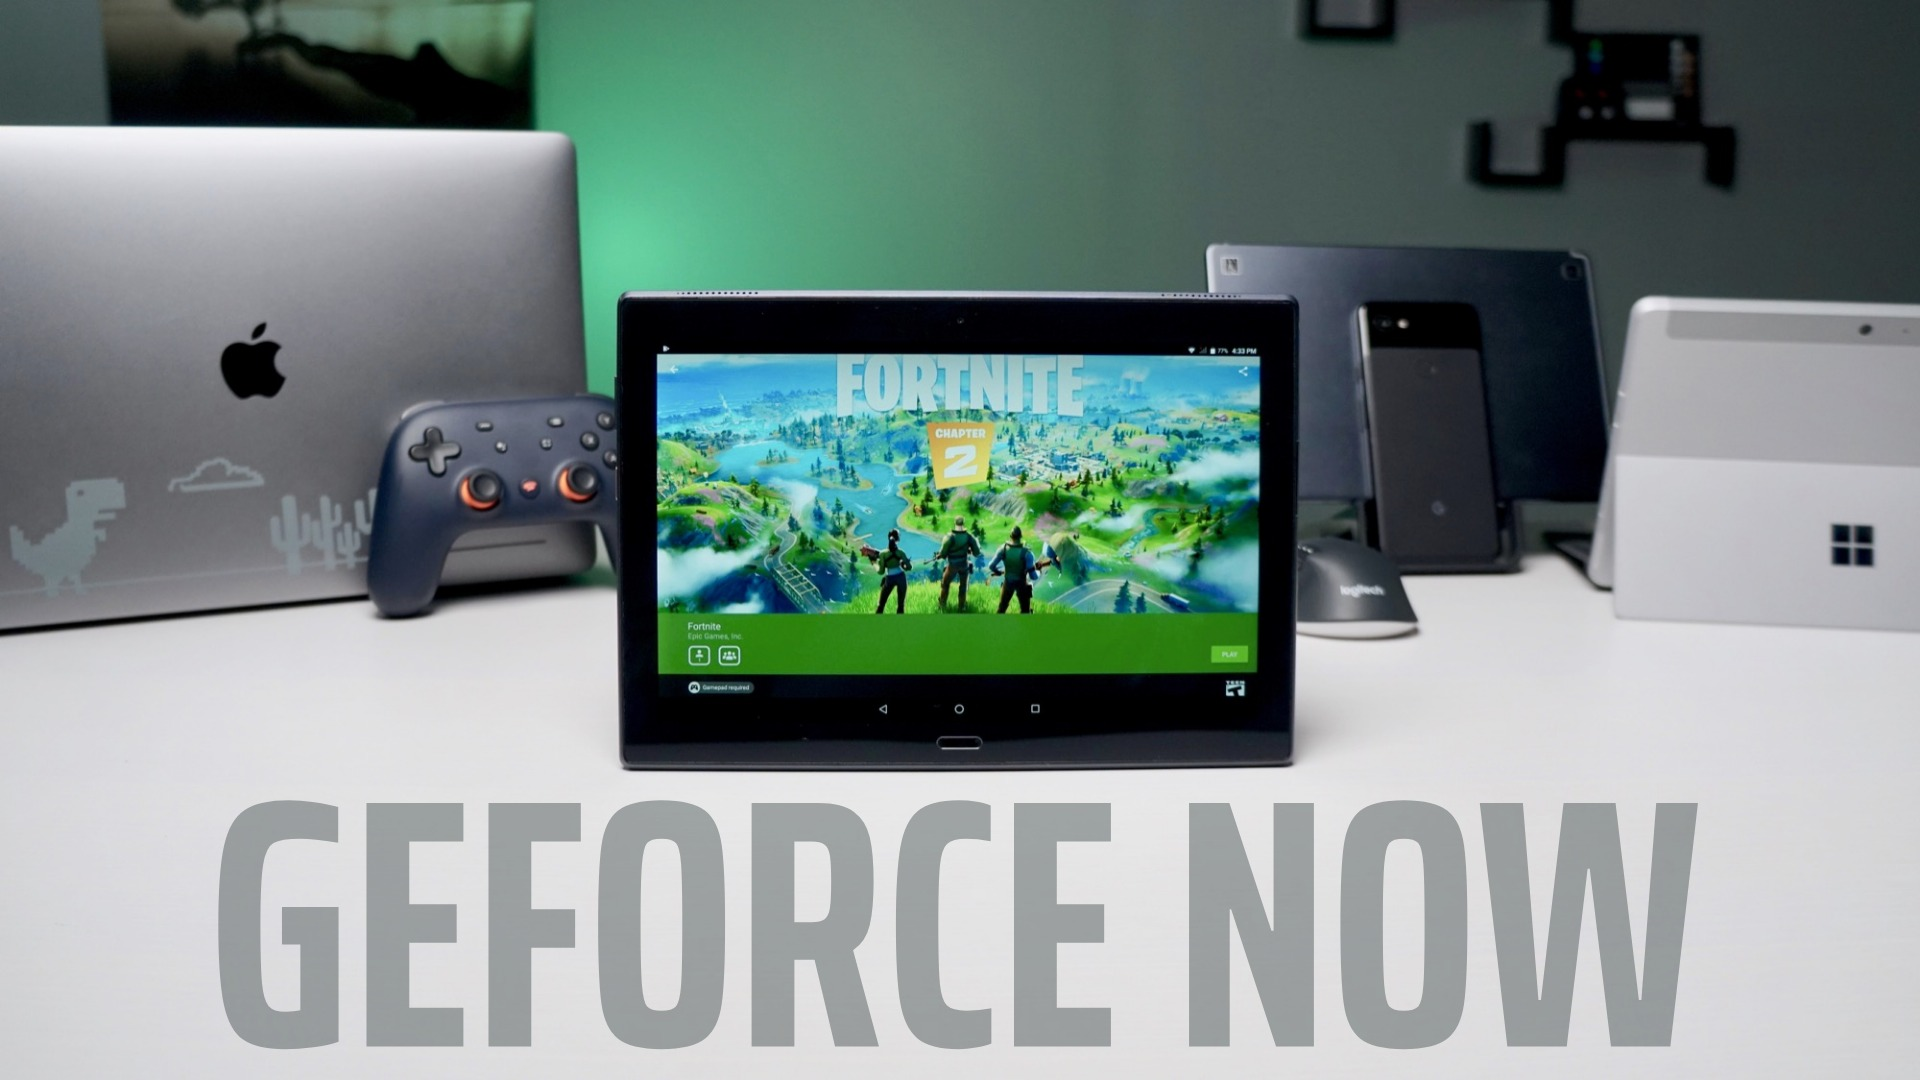 NVidia GeForce NOW installs from the Play Store on ARM-powered Chromebooks just fine